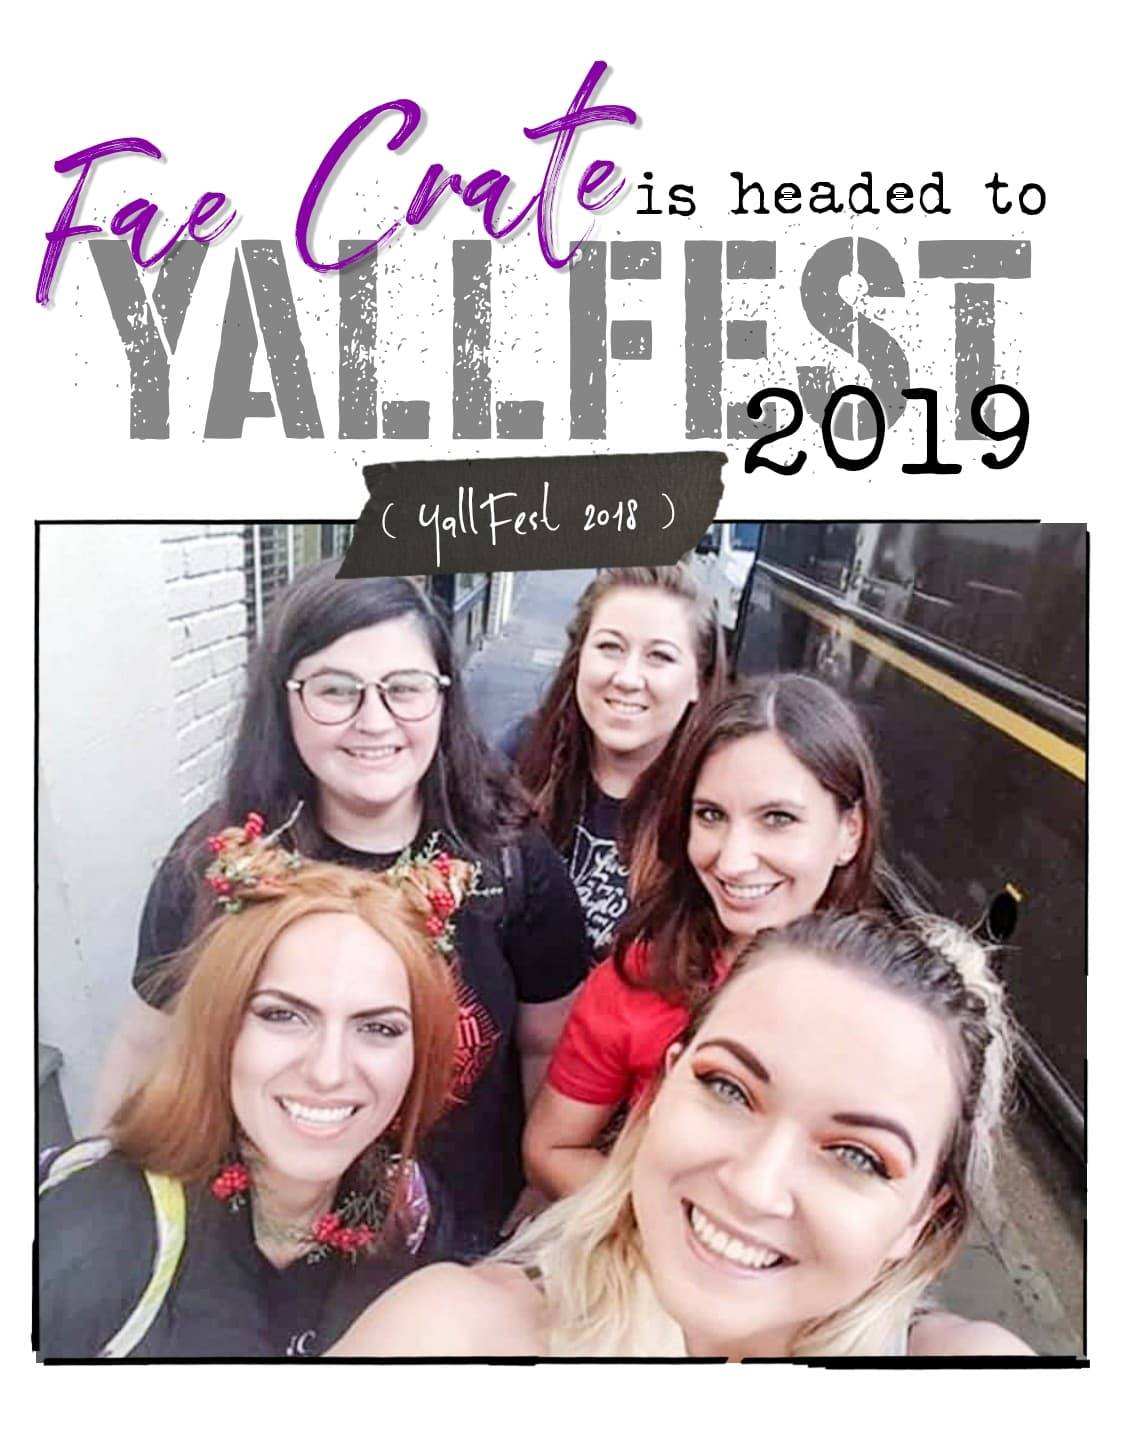 Fae Crate is headed to Yallfest 2019